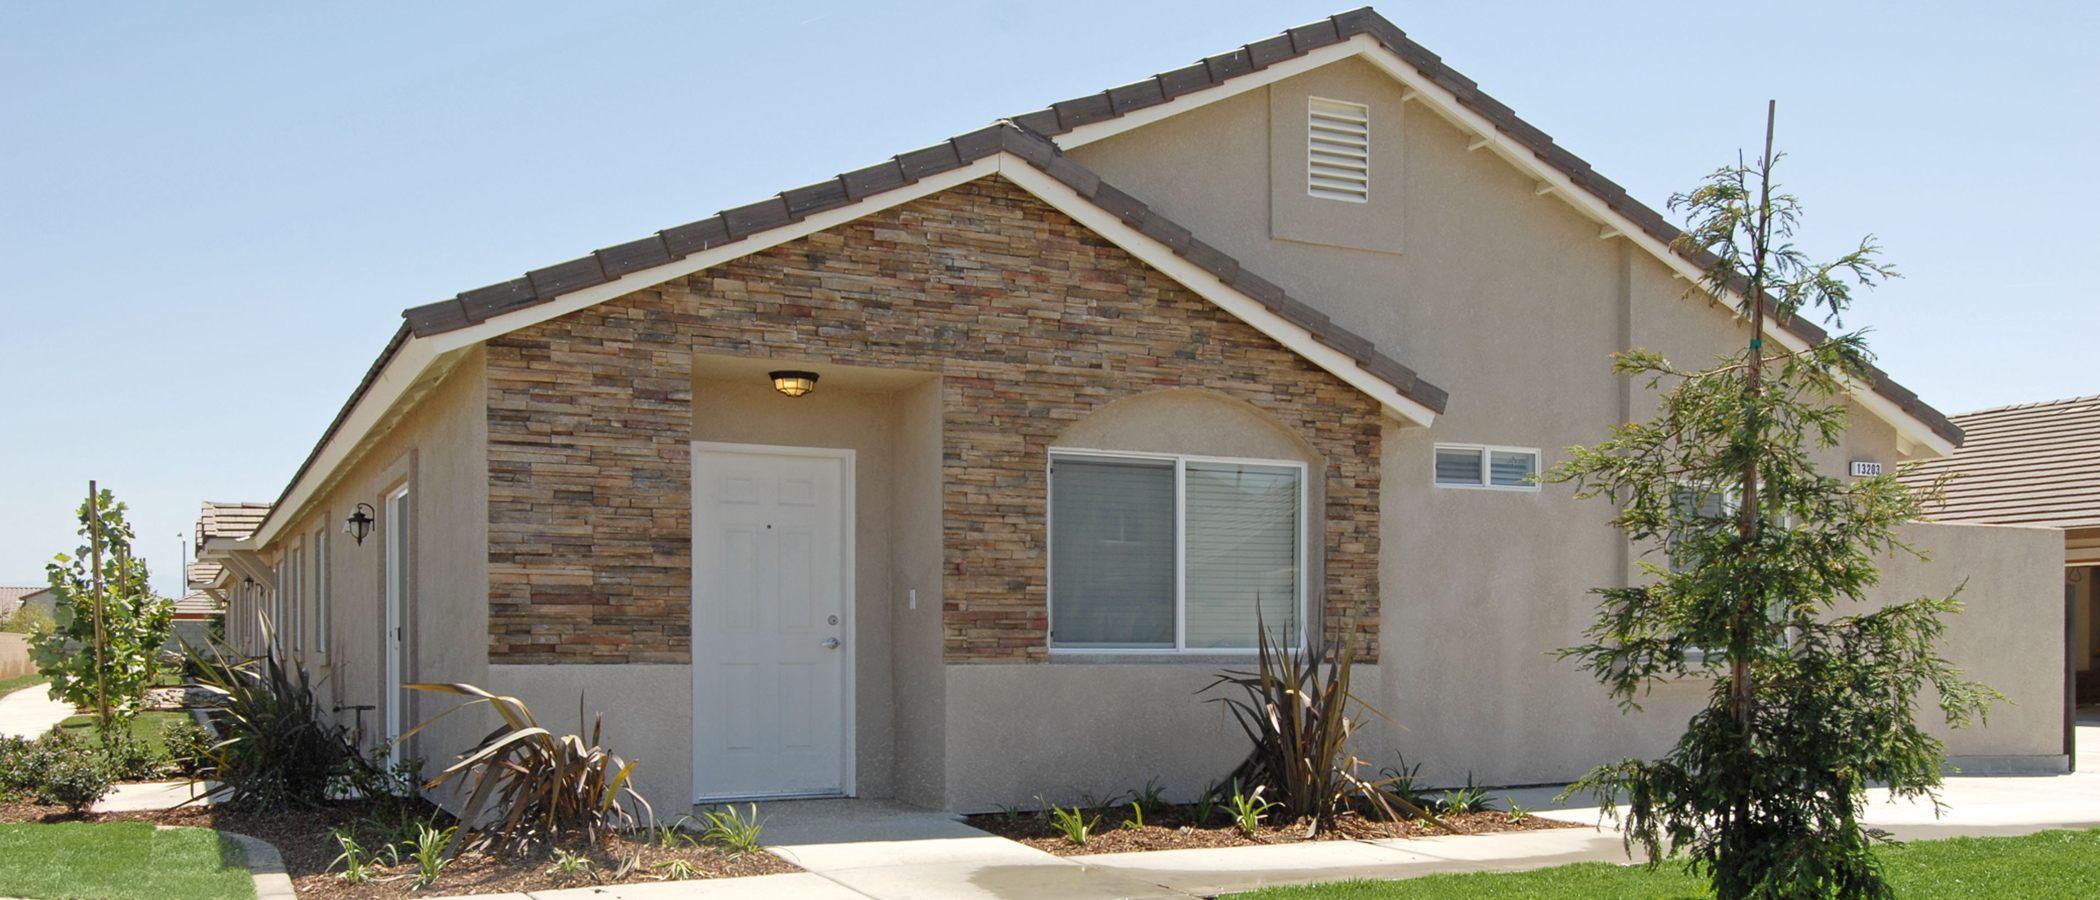 Evansport place apartments in bakersfield ca for Home builders bakersfield ca